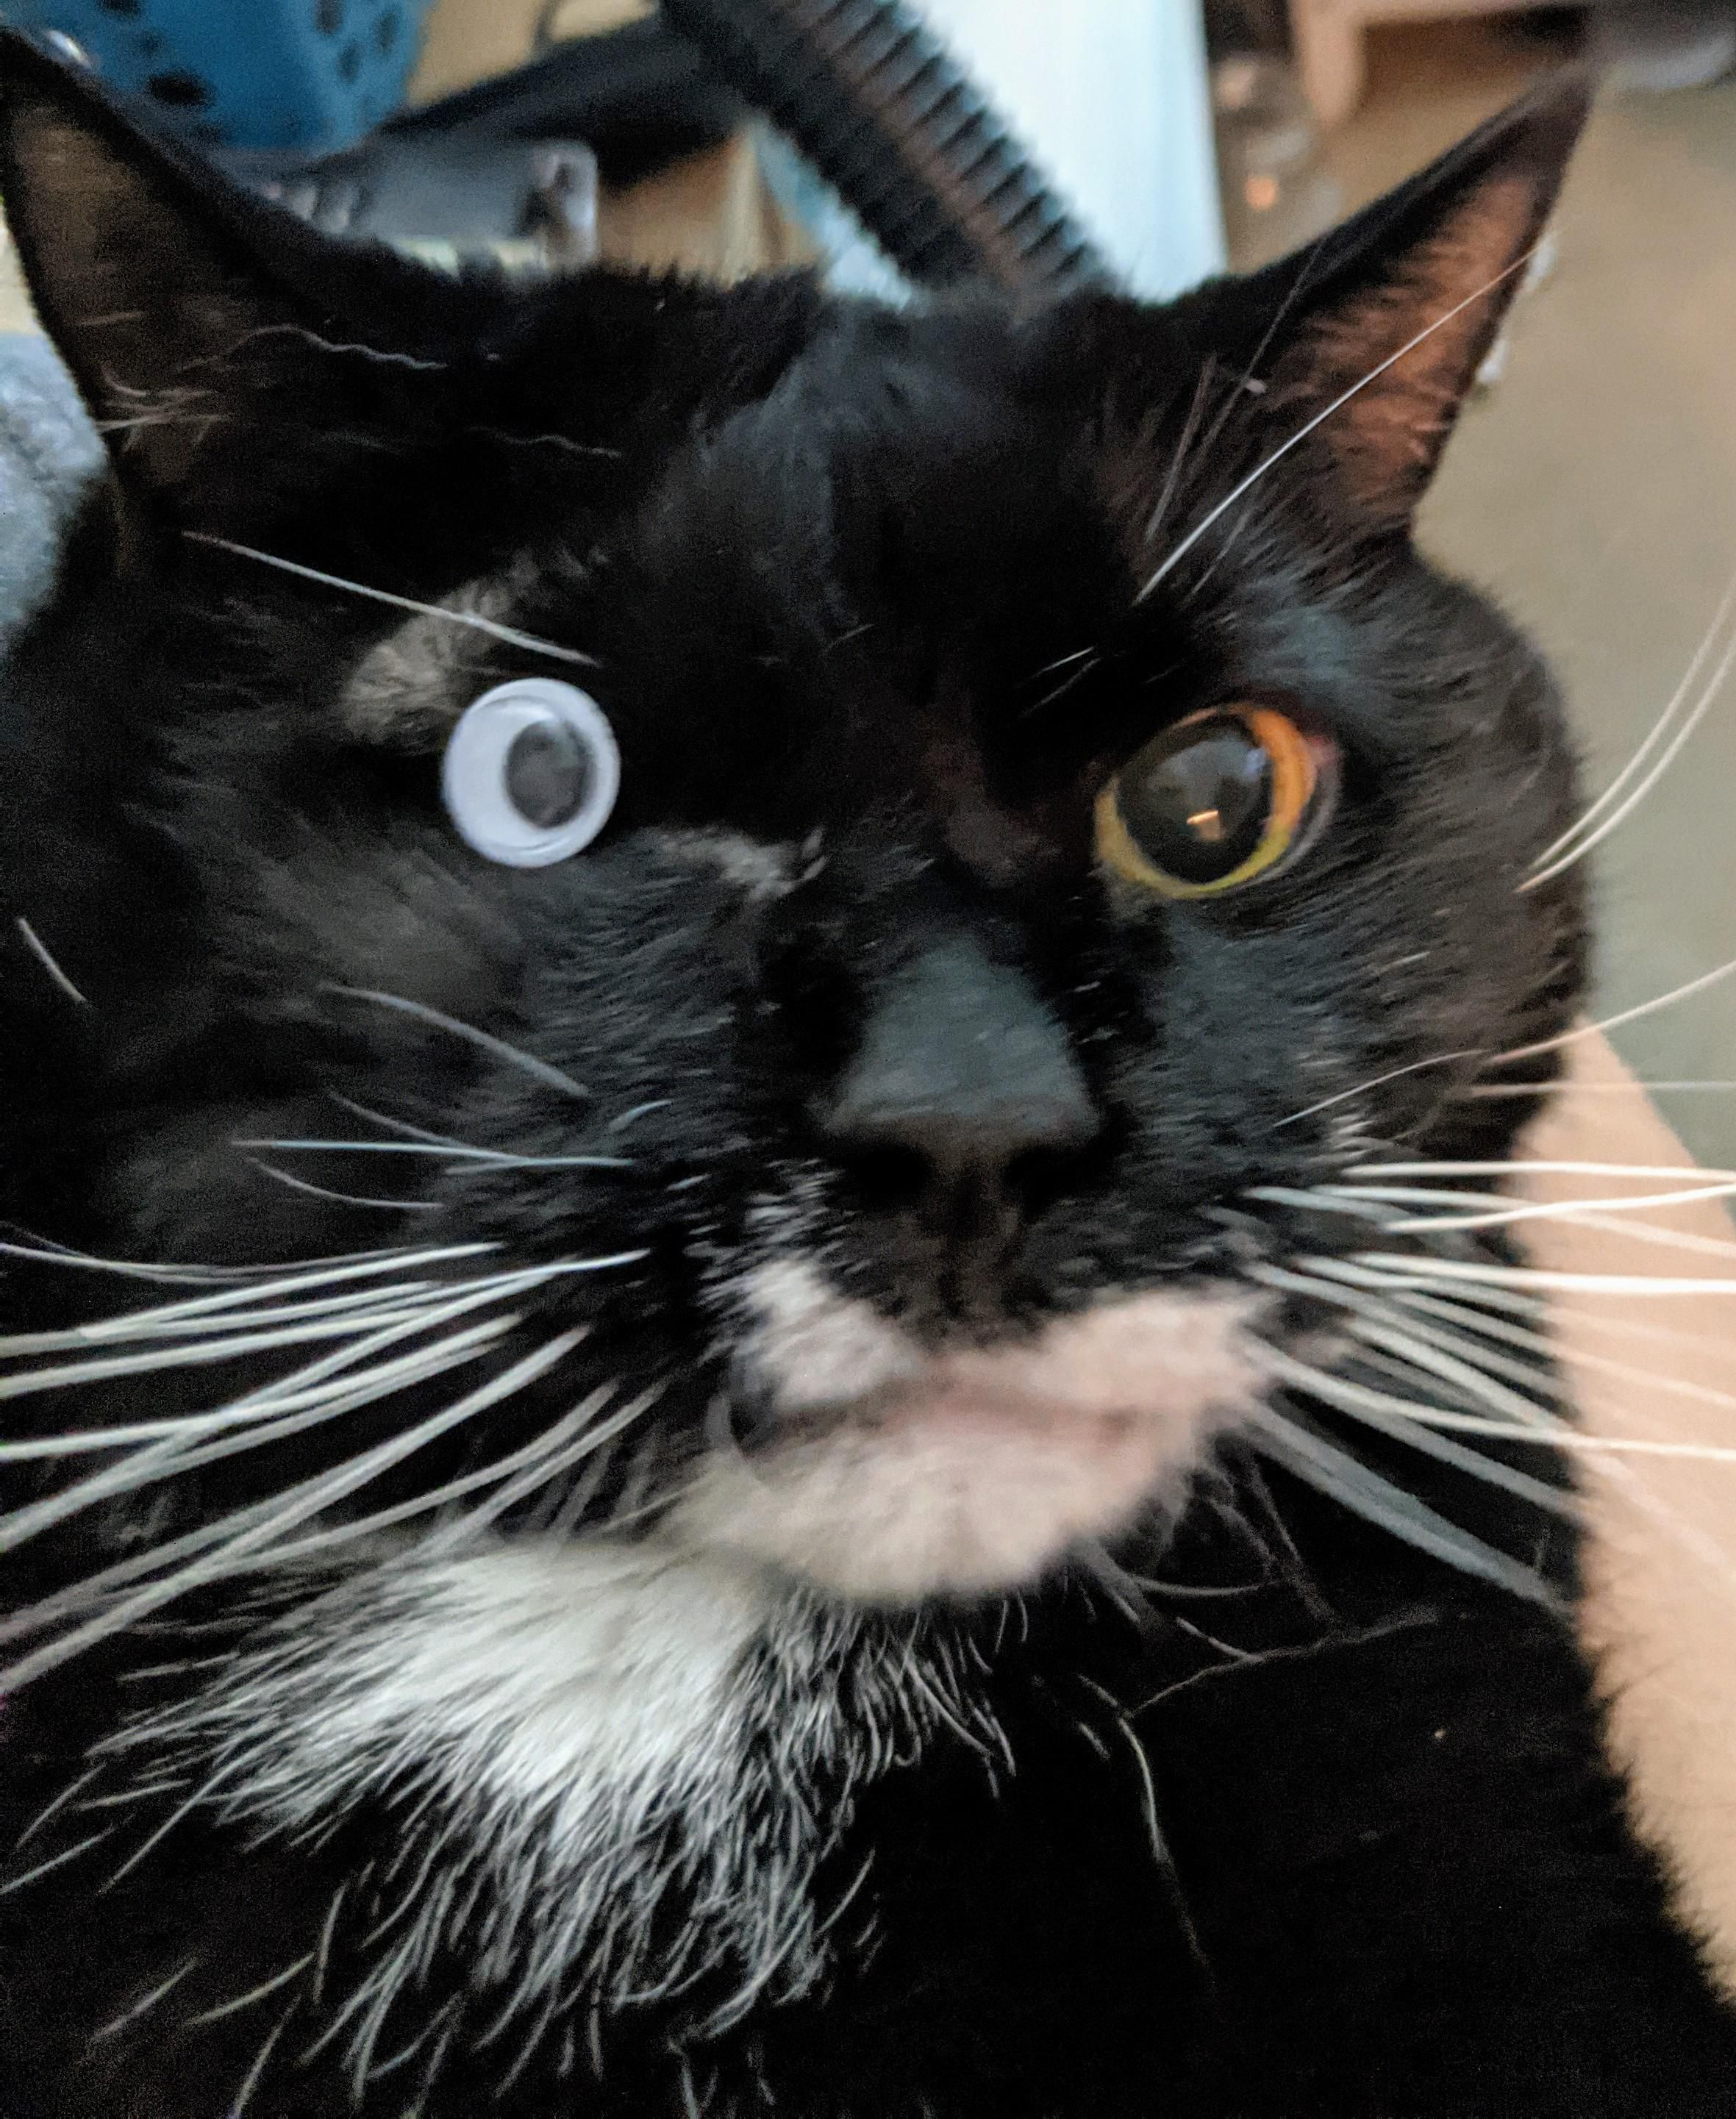 My cat had his eye surgically removed so I gave him a new one.